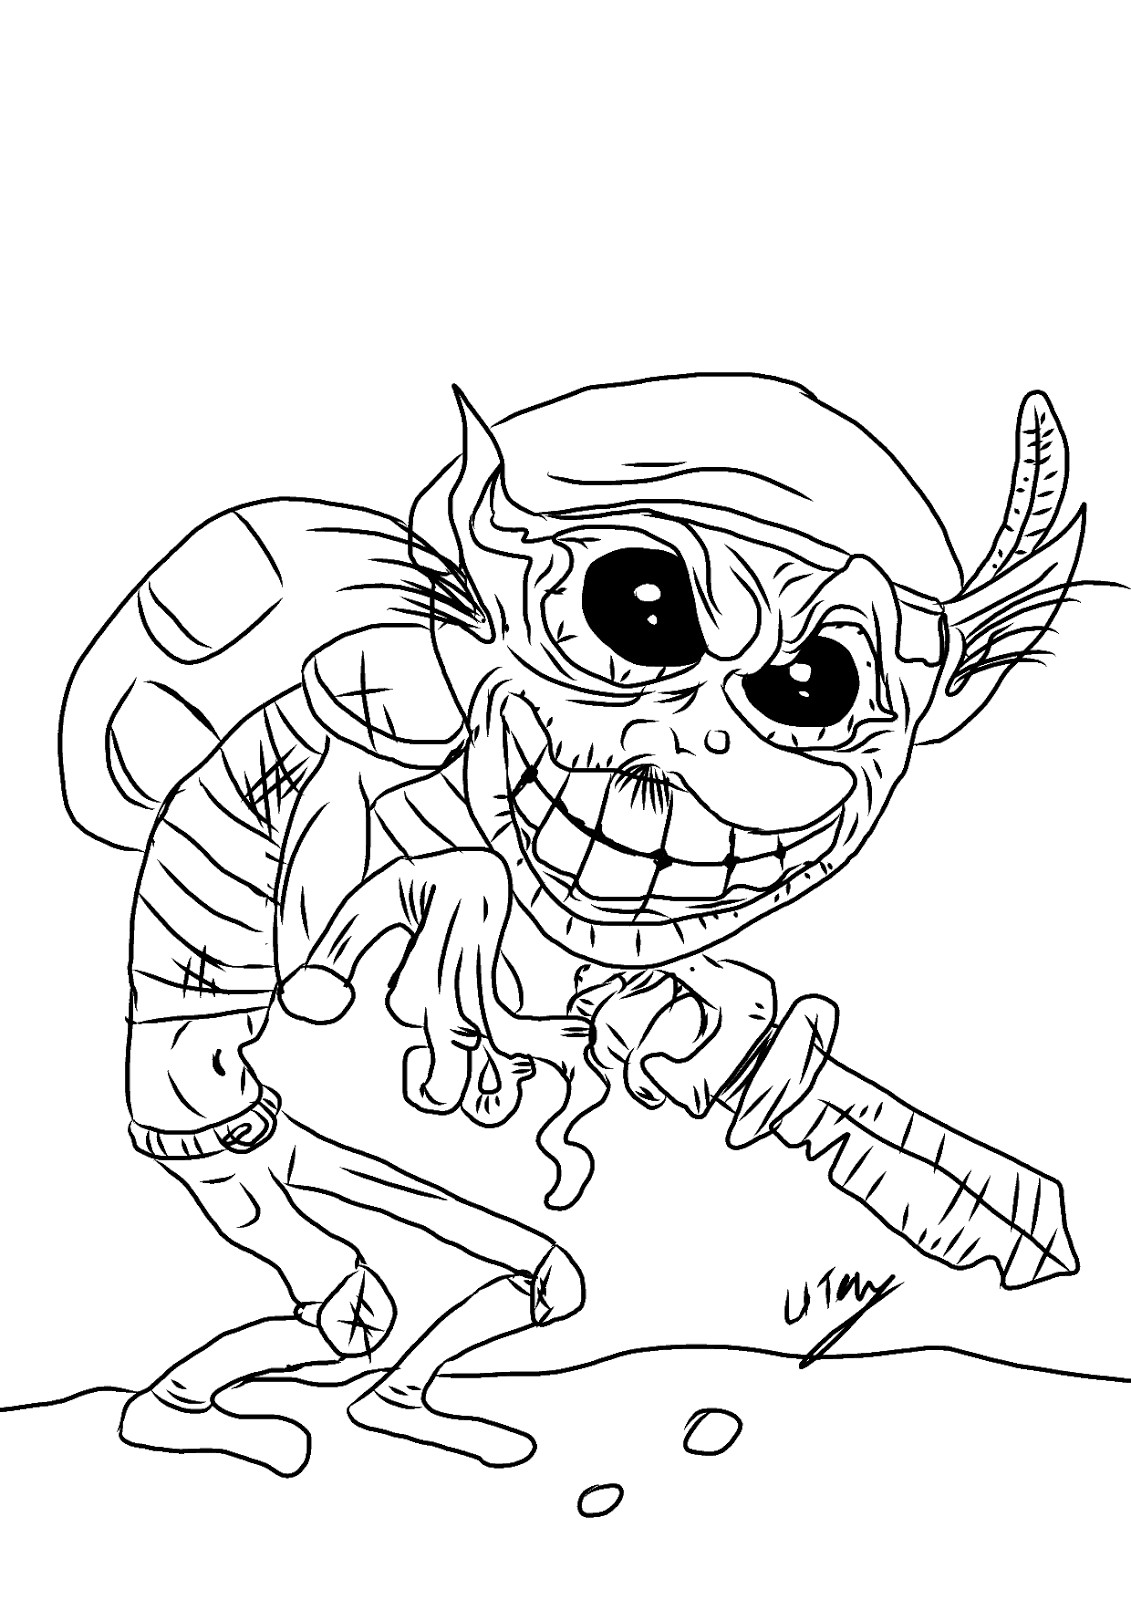 goblin pictures to color goblin coloring pages at getcoloringscom free printable goblin to pictures color